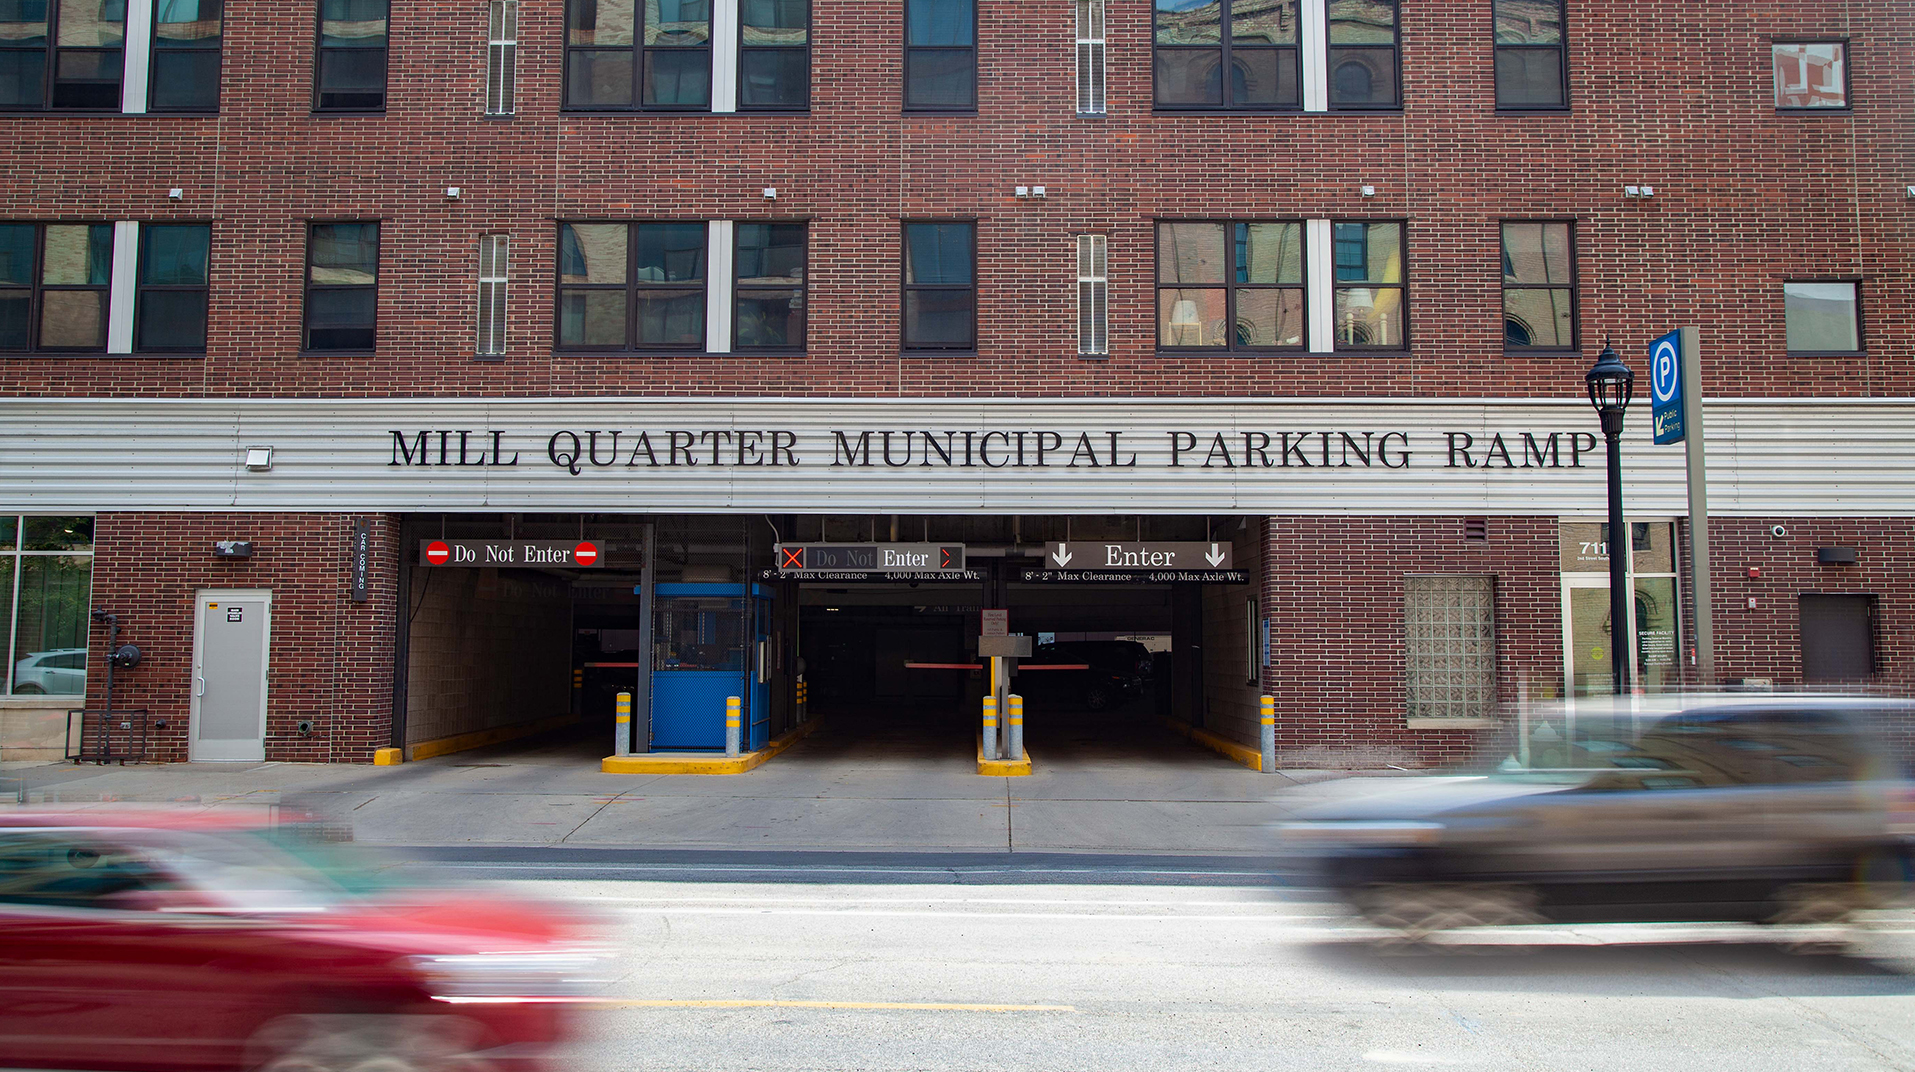 Mill Quarters Municipal Parking Ramp